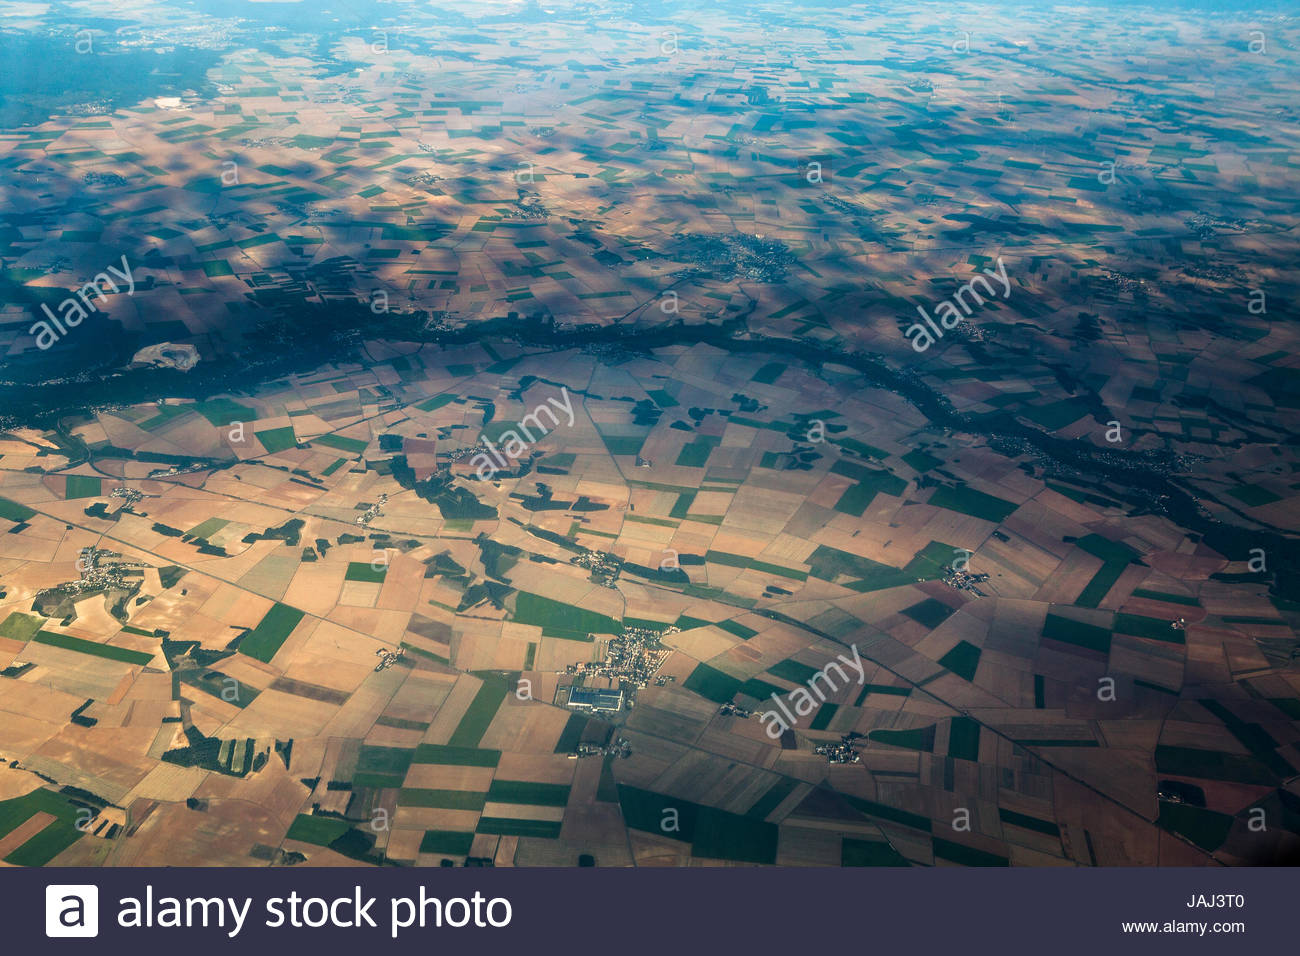 Fields and villages of rural France's Ile-de-France region. - Stock Image